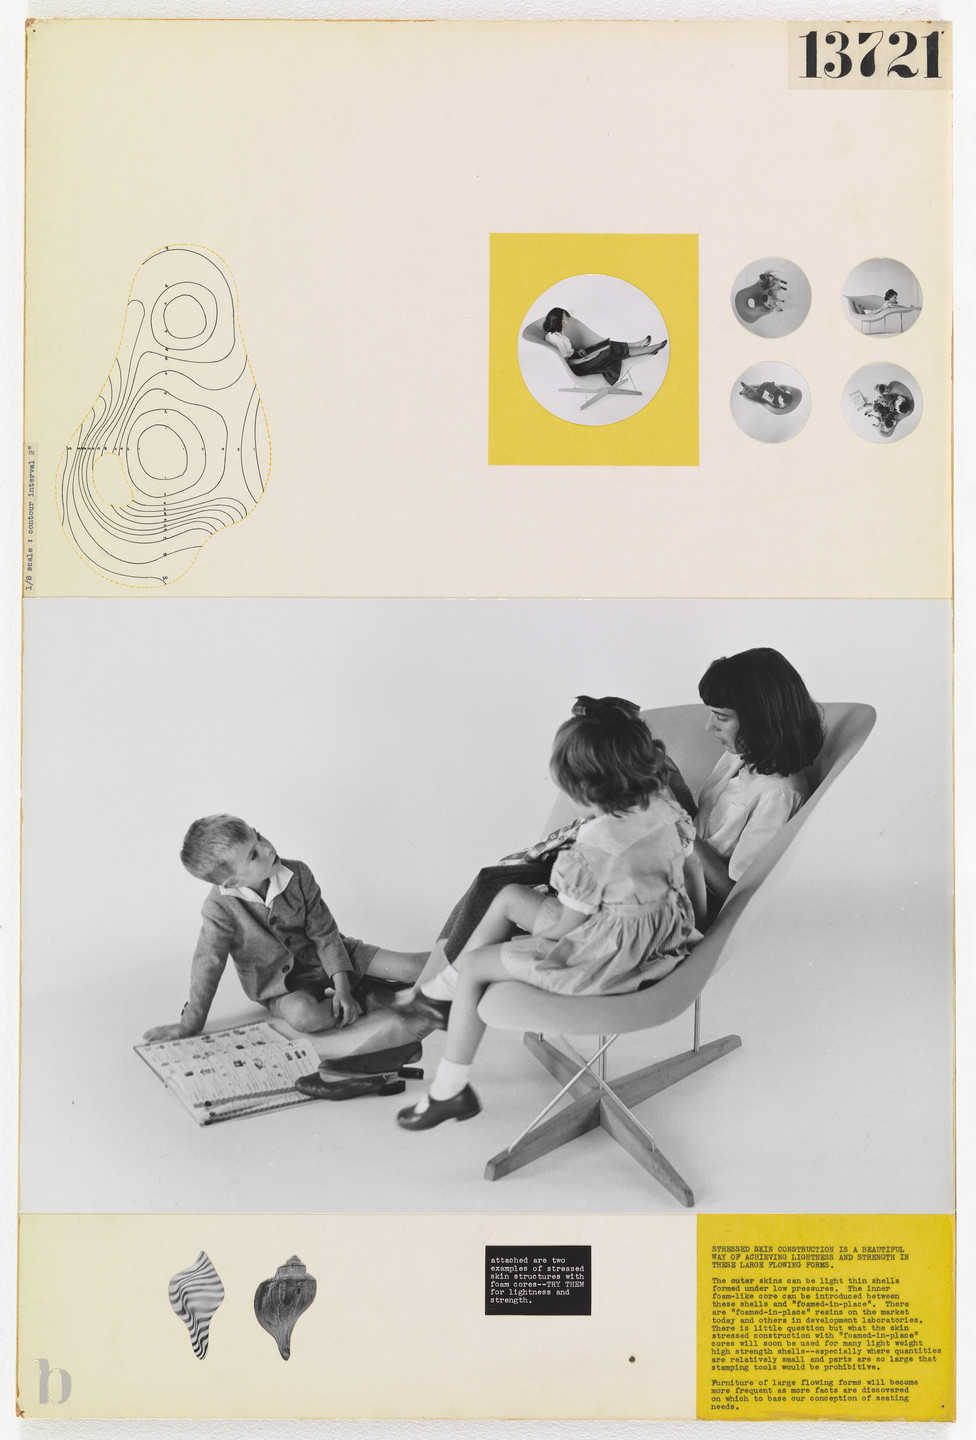 Charles Eames, Ray Eames. Entry Panel for MoMA International Competition for Low-Cost Furniture Design (La Chaise). c. 1950